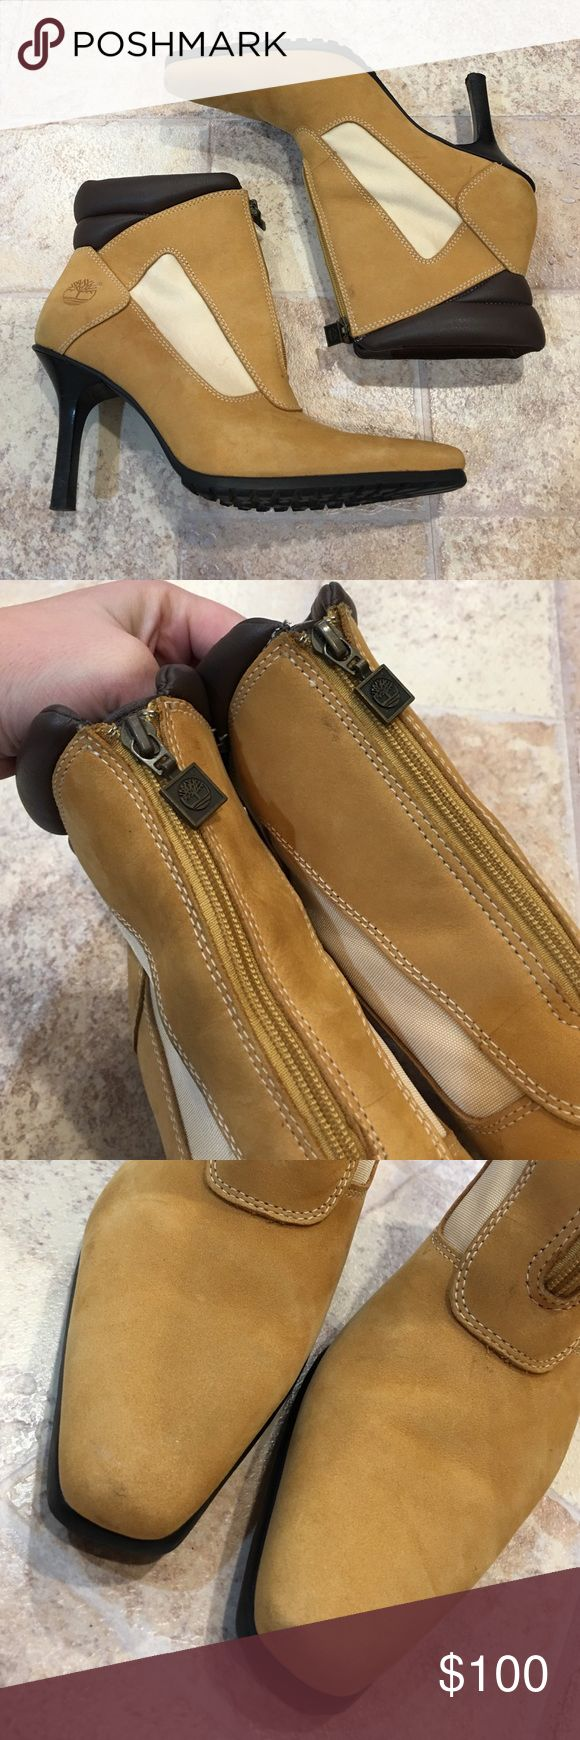   Timberland   Genuine Leather Heeled Boots In excellent condition. Only worn a few times. Some markings on the boots as shown in the pictures but not noticeable when wearing. One of a kind shoe! 100% authentic Timberland. Zips up in the front. Timberland Shoes Ankle Boots & Booties